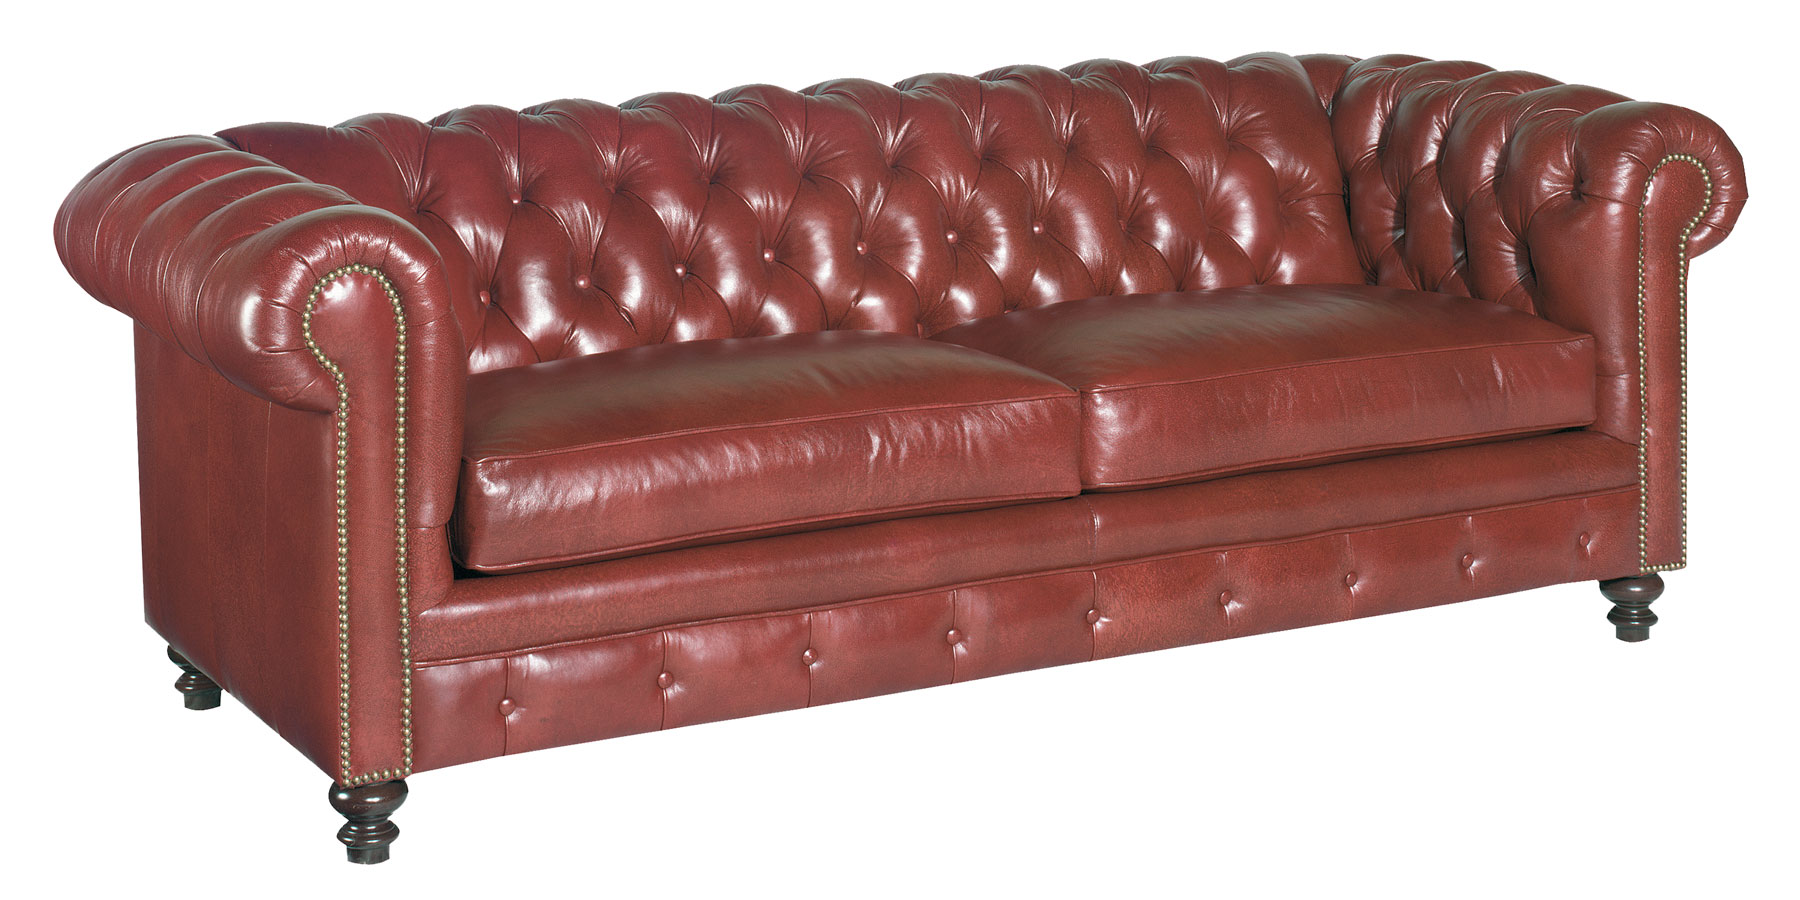 8 way hand tied chesterfield sofa clubfurniture for Sofa 8 way hand tied